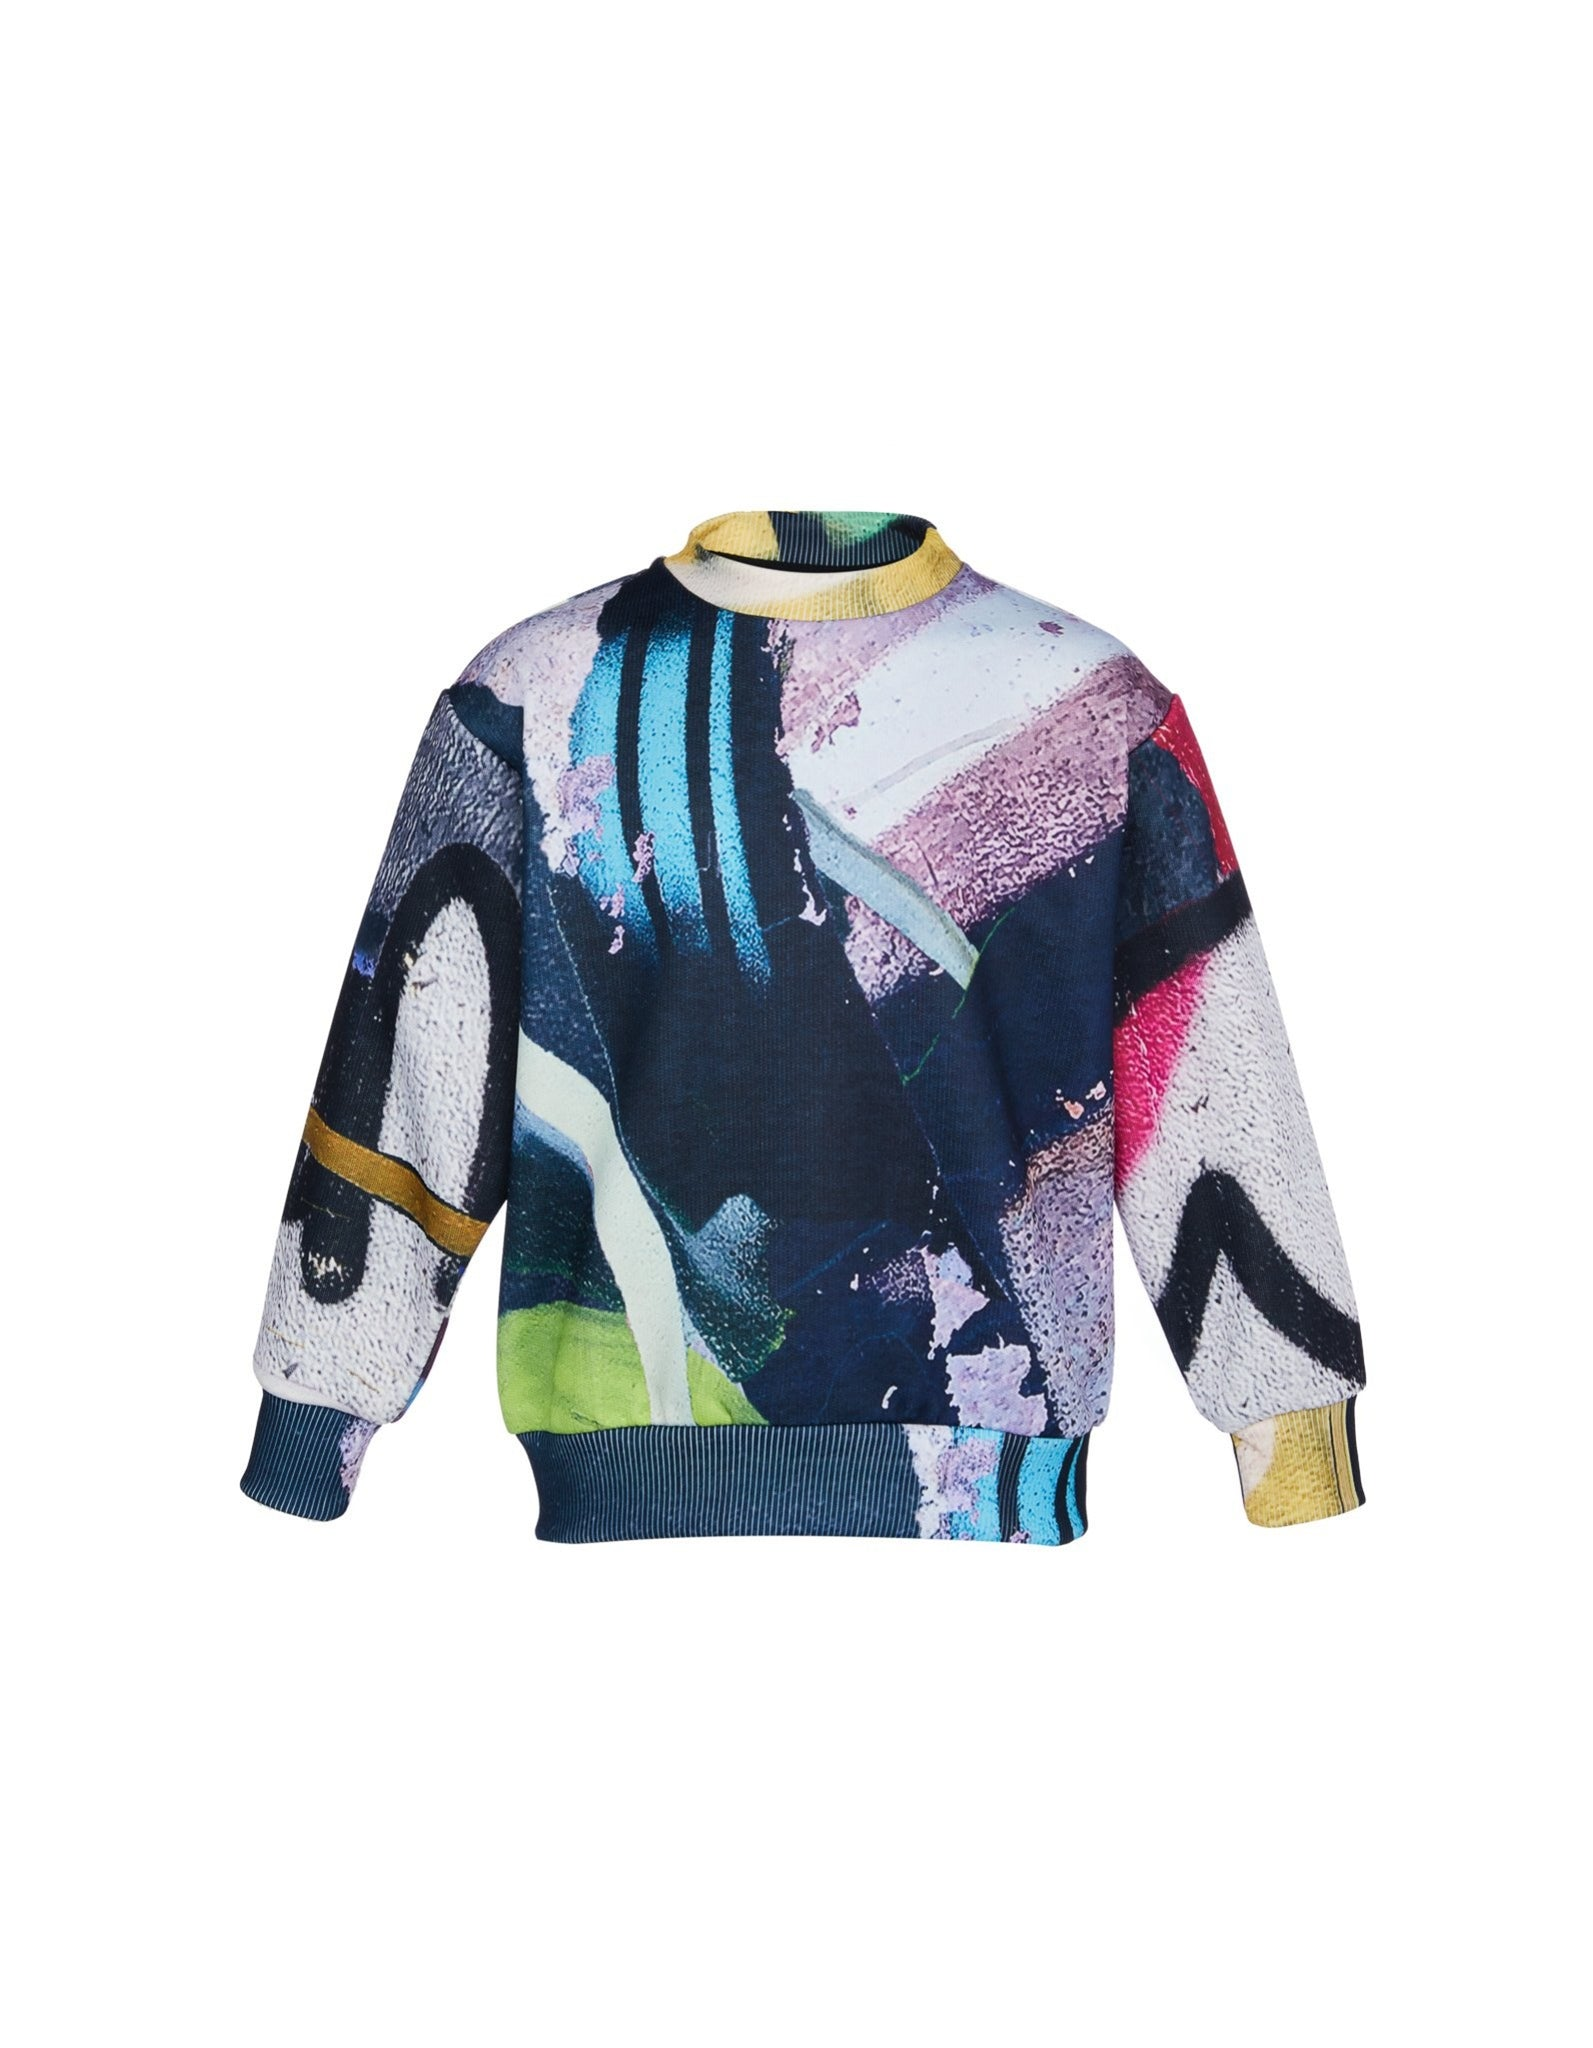 M'A KIDS CREW NECK IN PASTEL PRINT